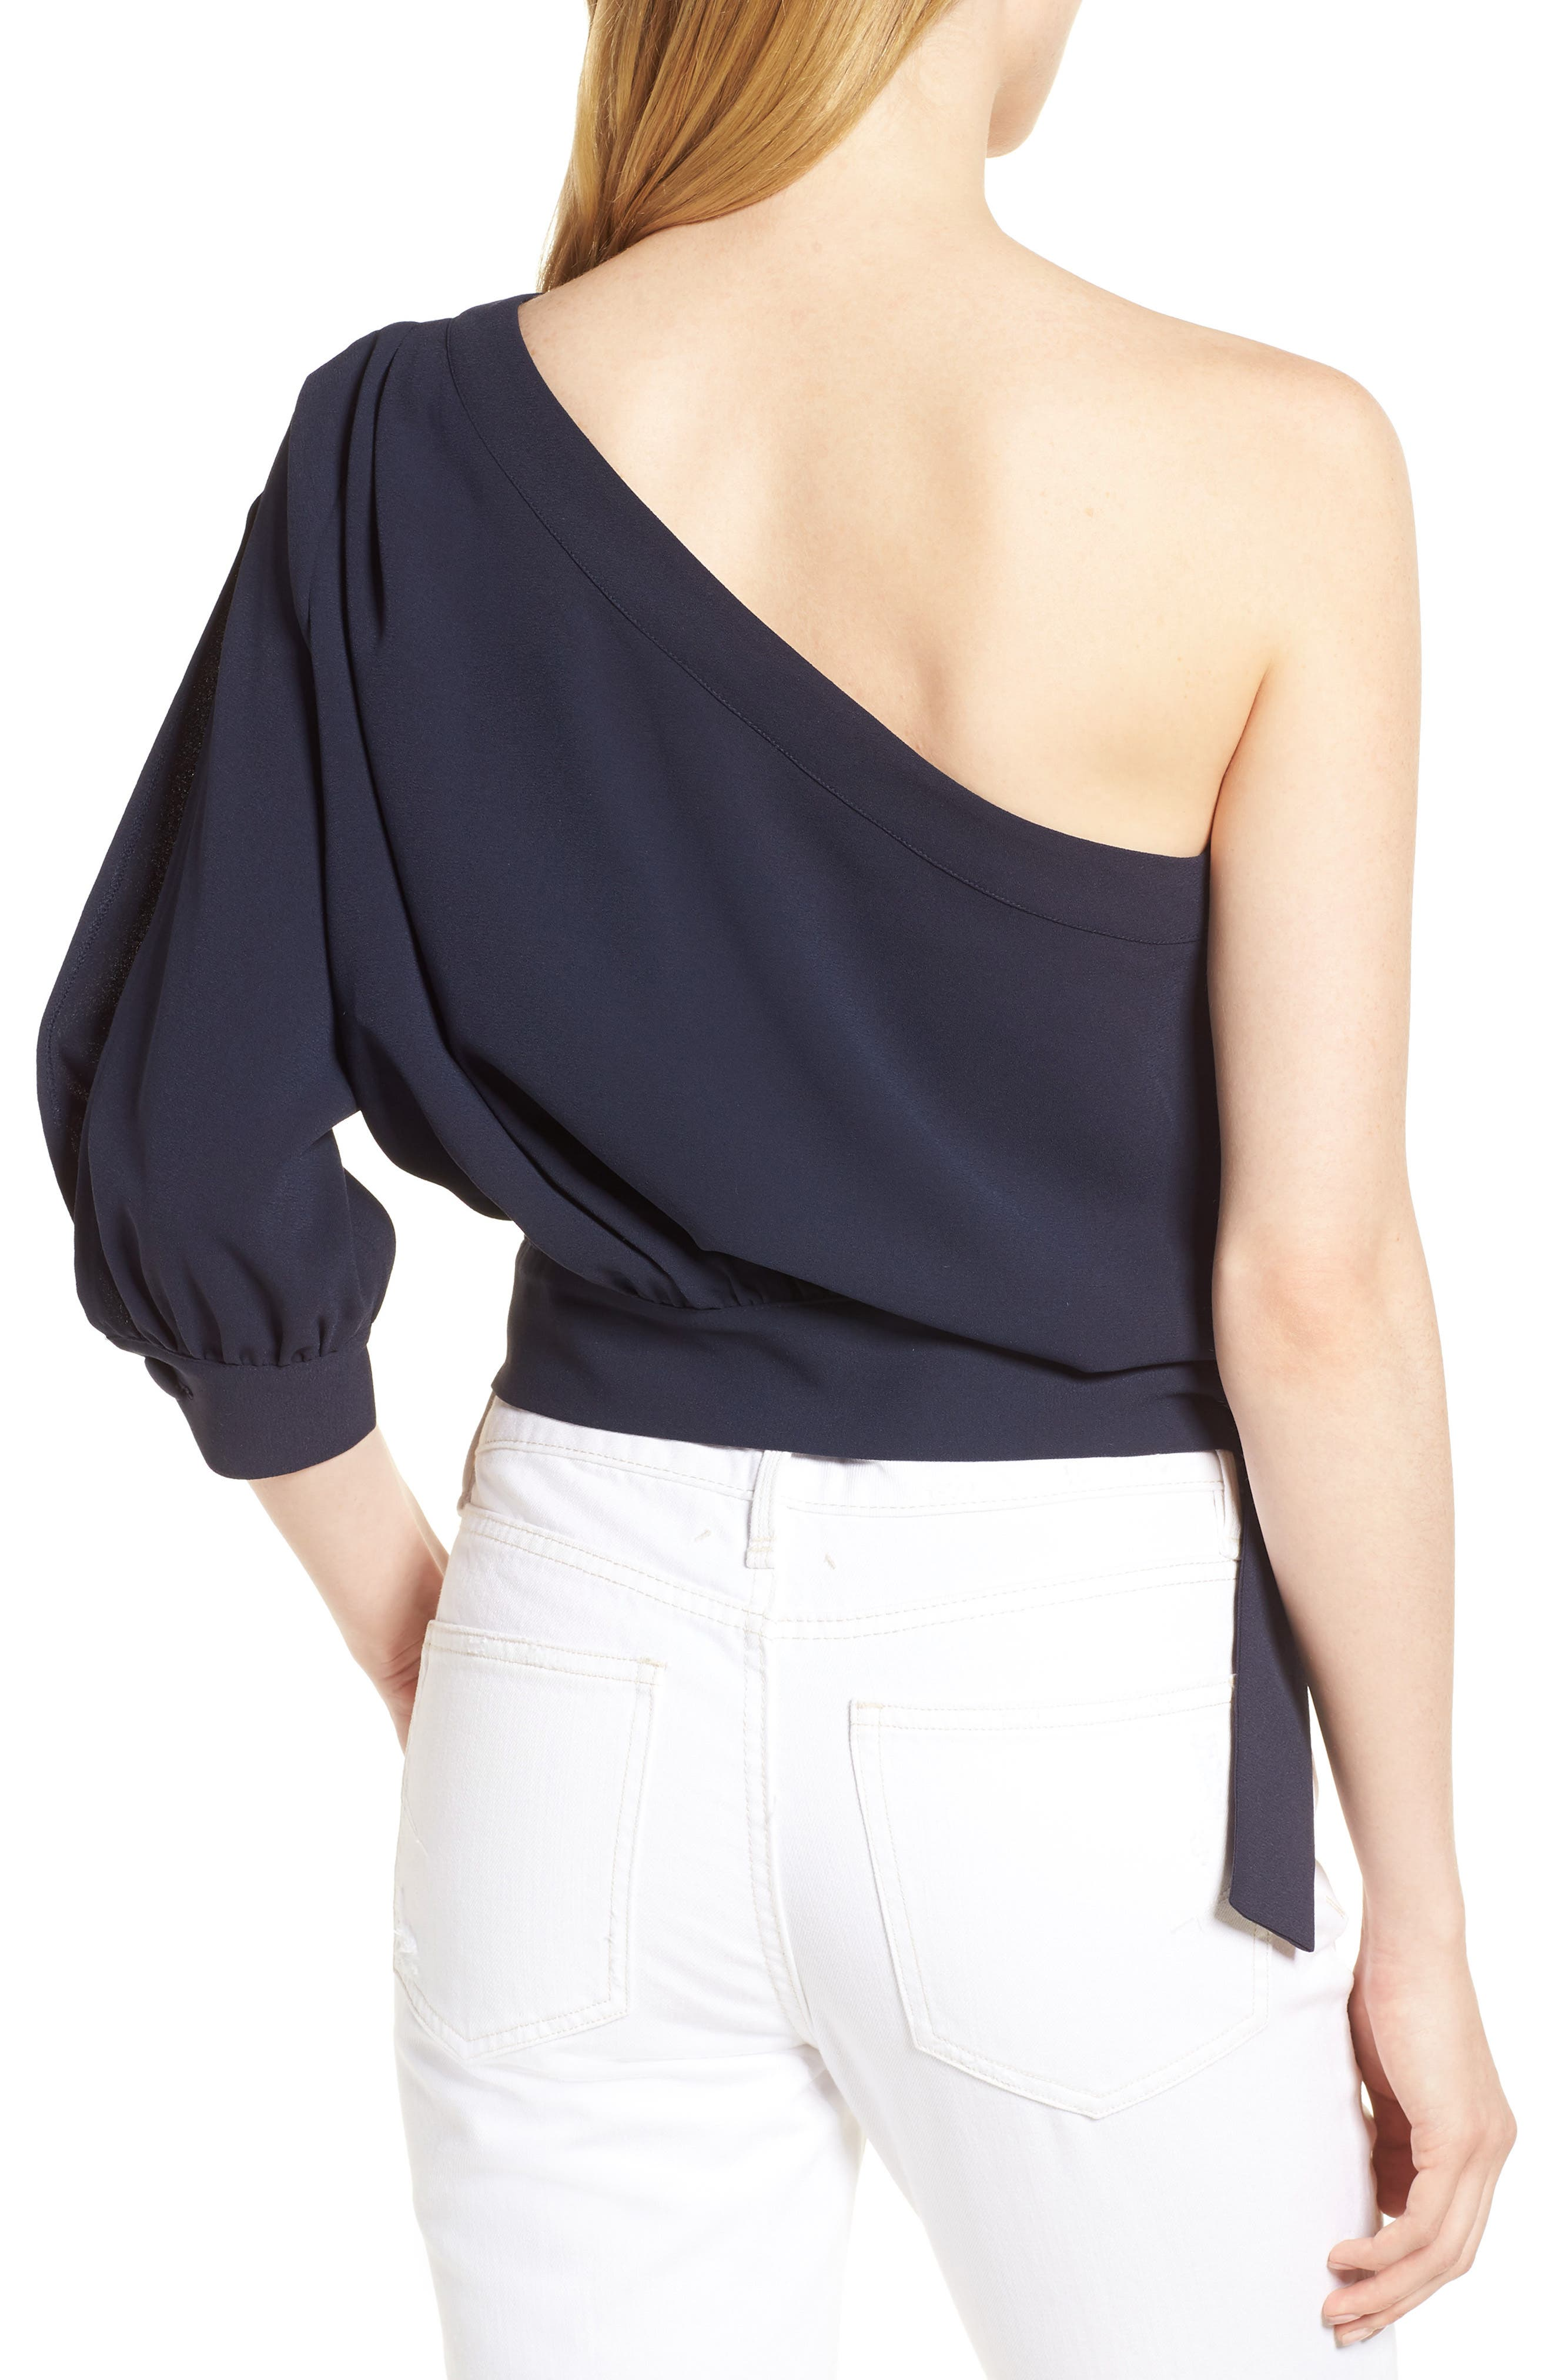 Alternate Image 2  - Habitual Mia One-Shoulder Side Tie Top